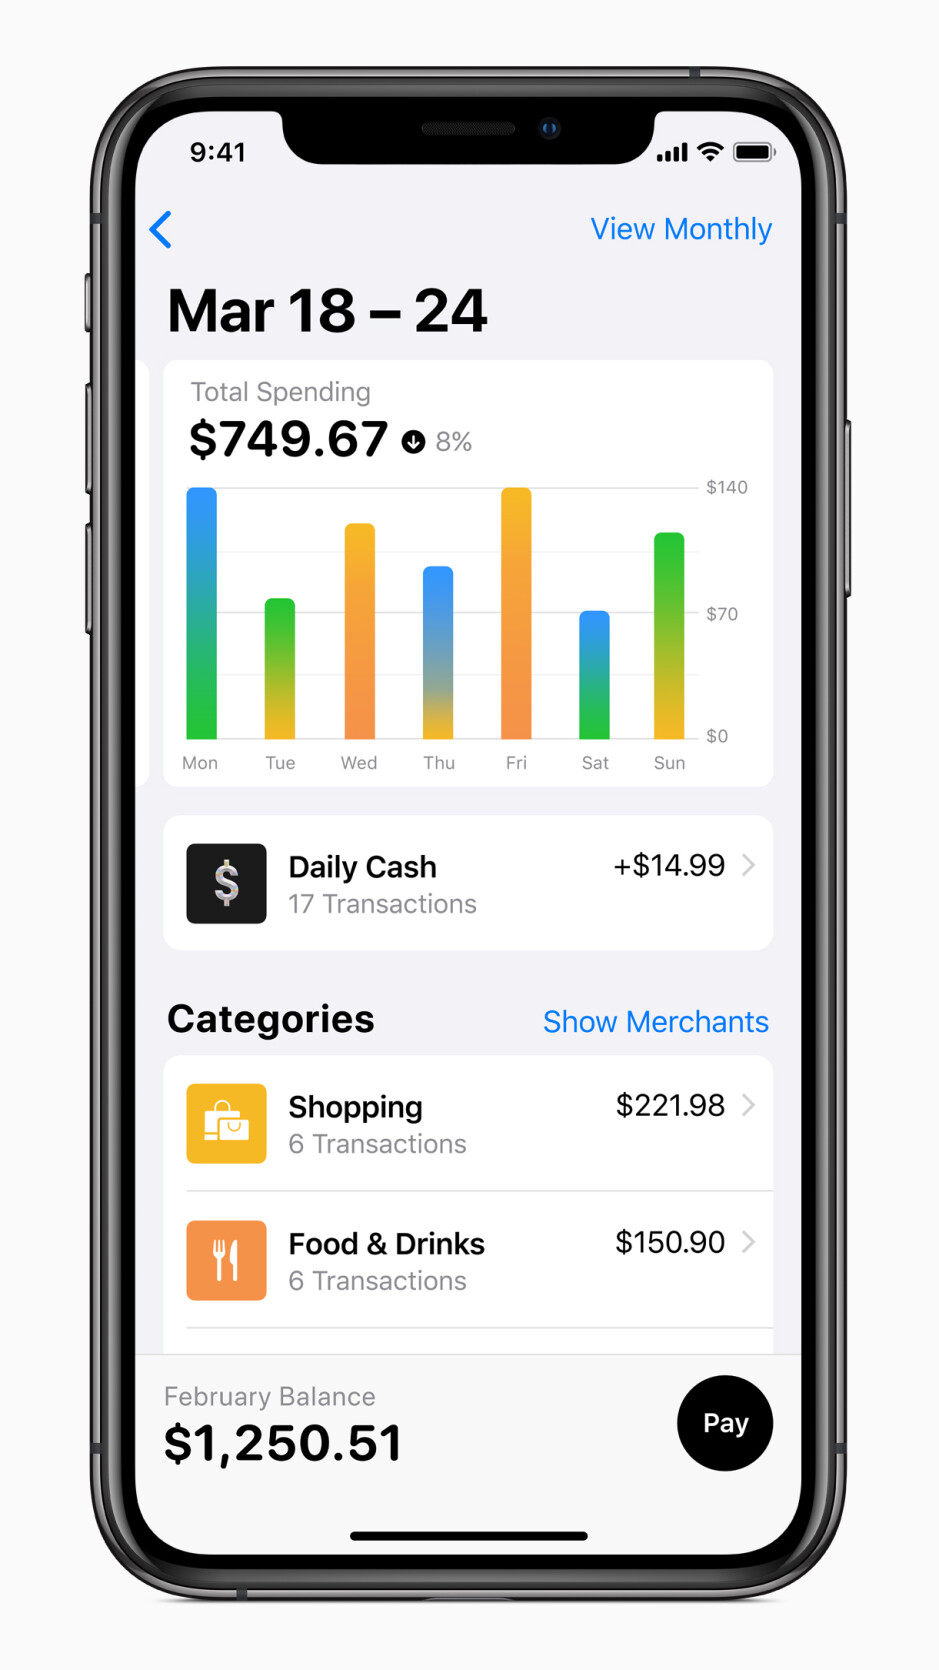 Weekly spending summary - Apple introduces Apple Card: Daily Cash, no fees, titanium card